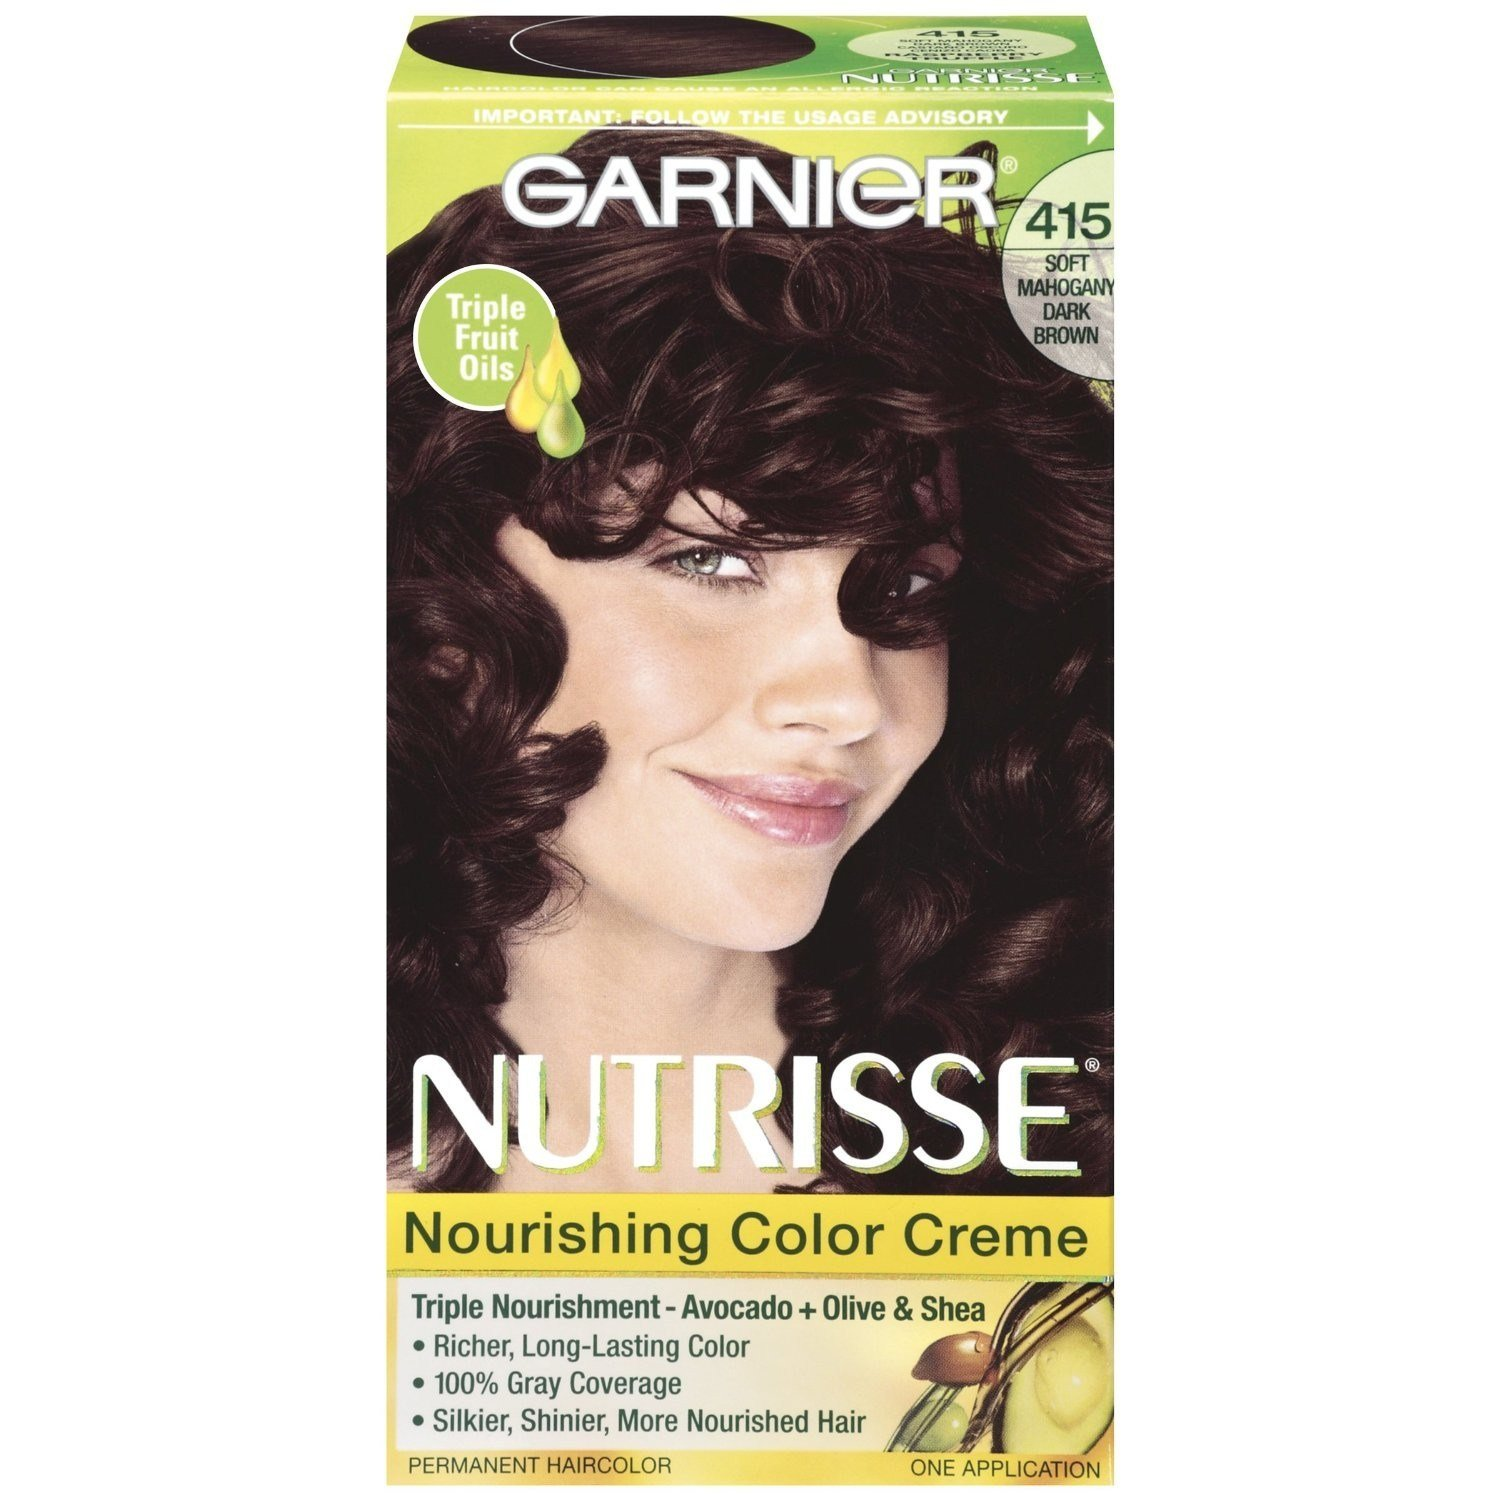 The Best Nutrisse Permanent Haircolor Soft Mahogany Dark Brown 415 Pictures